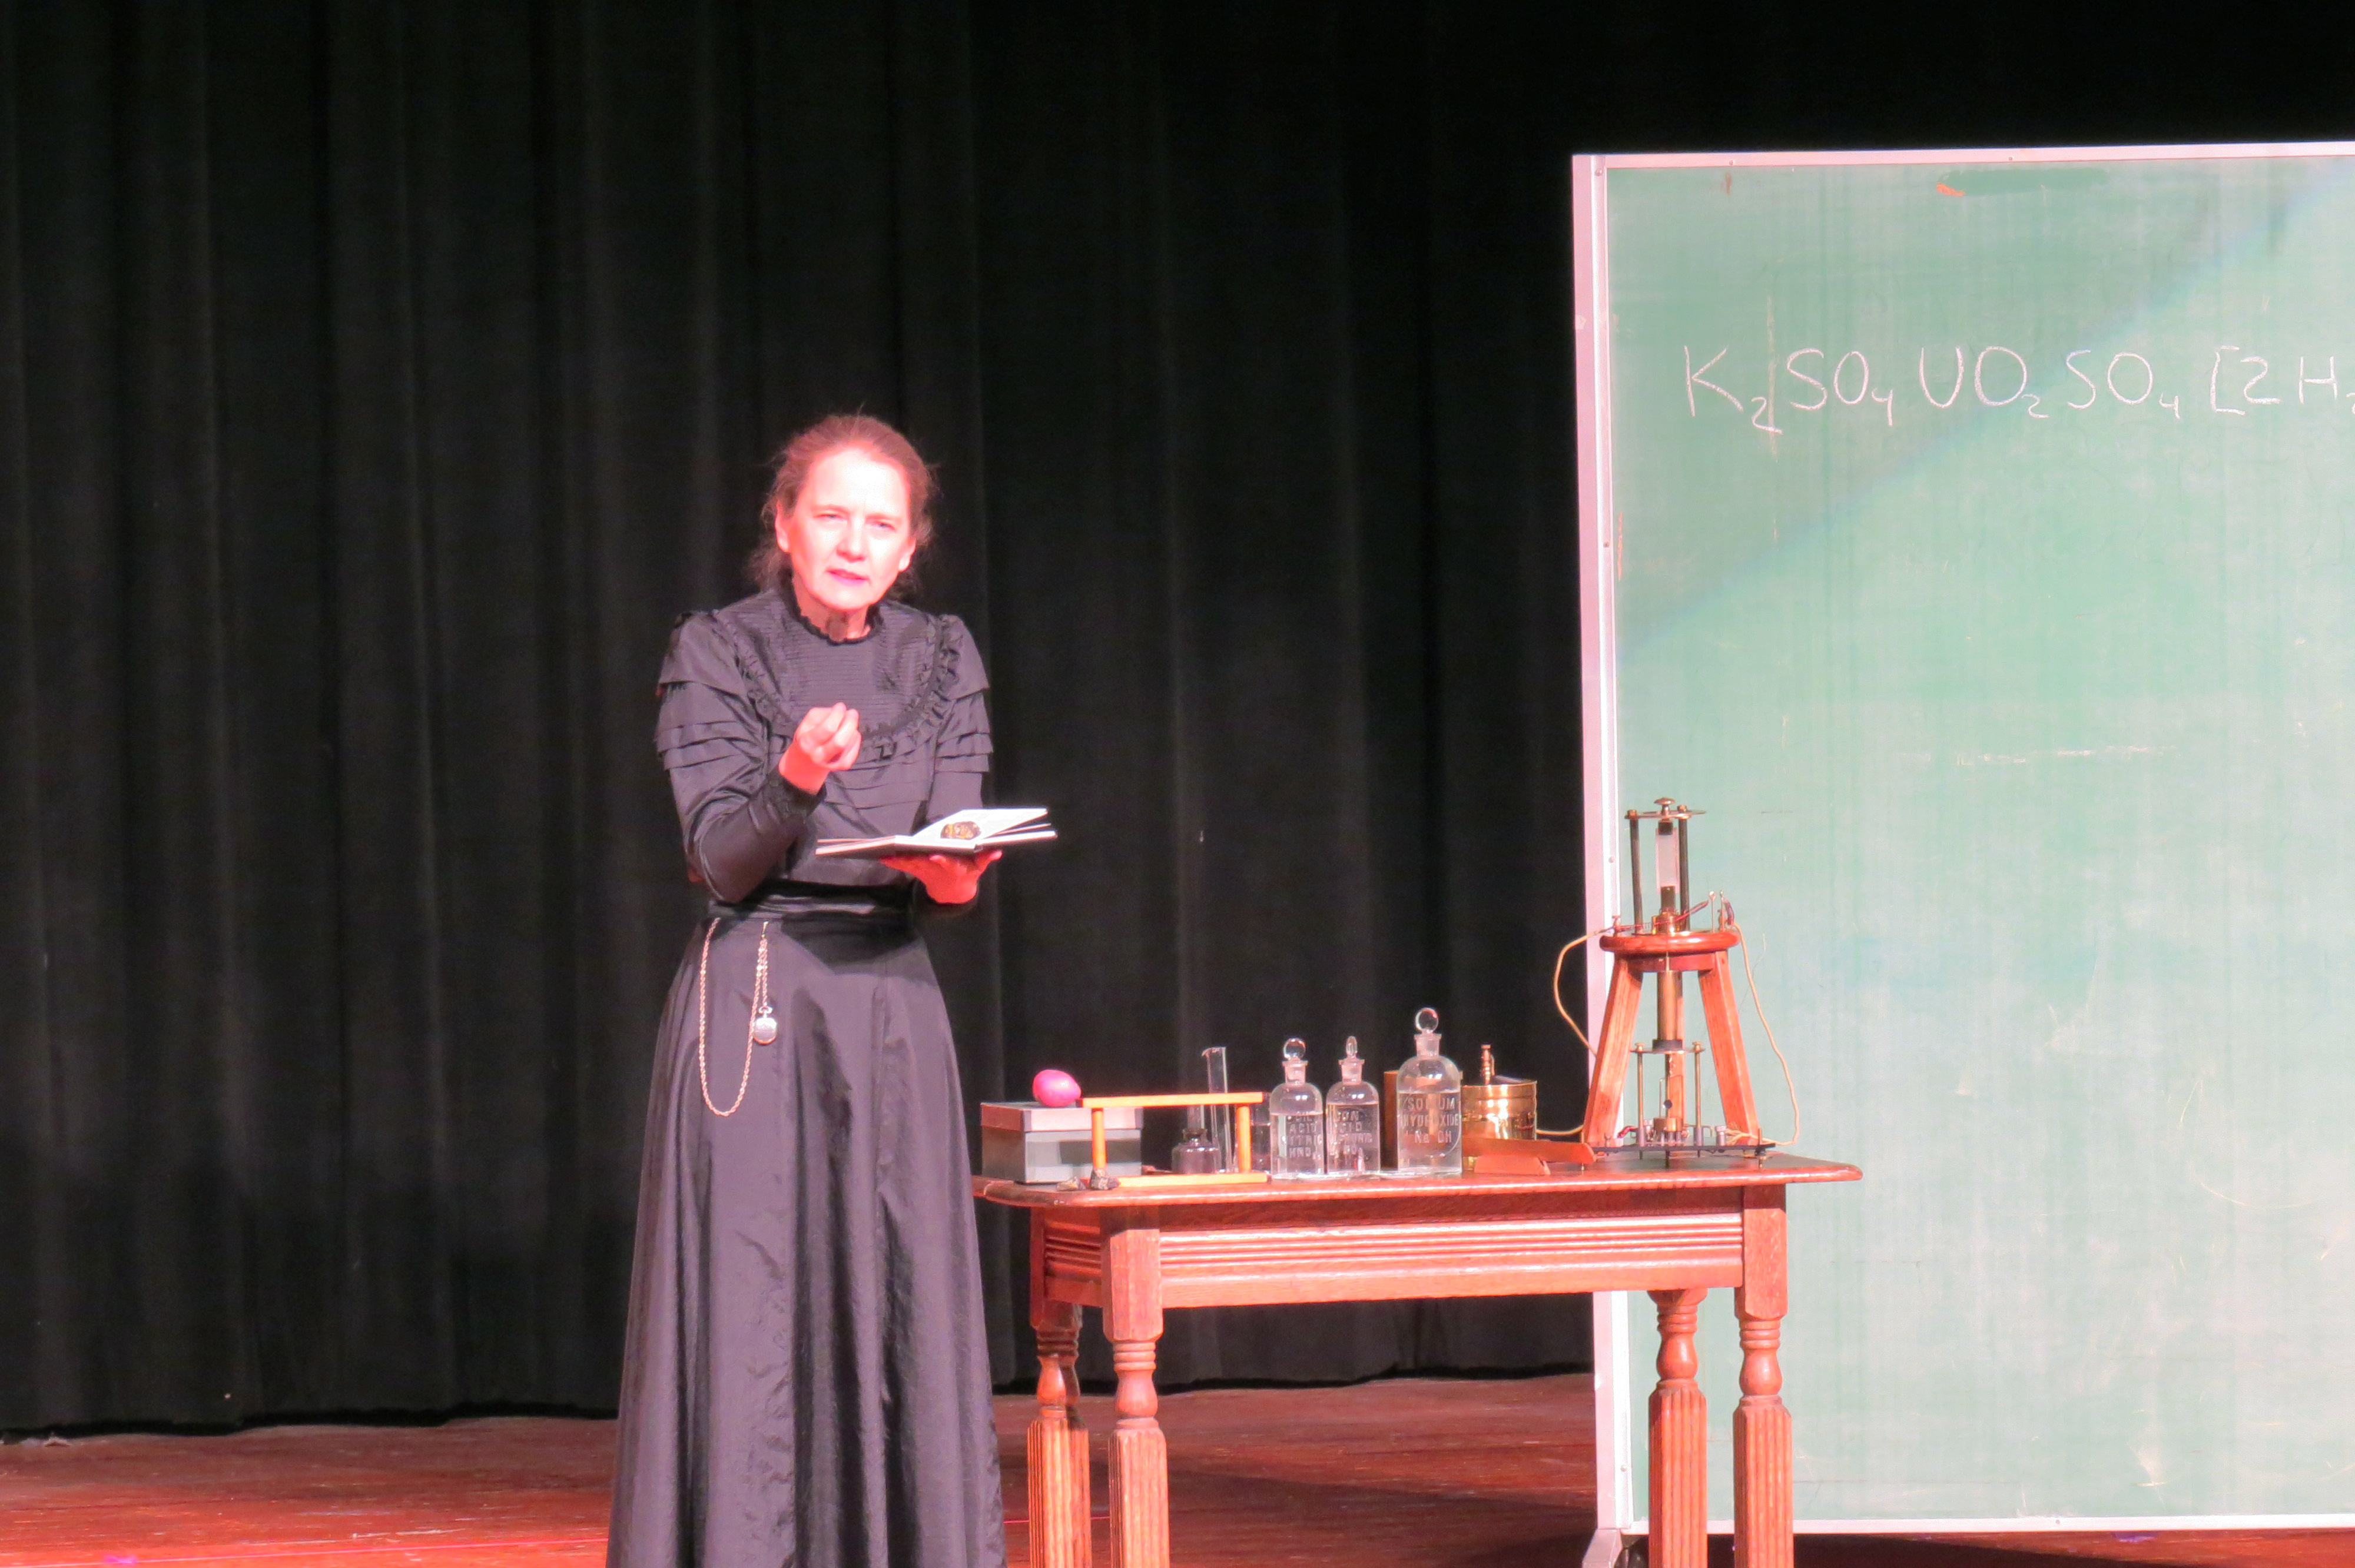 Mount Hosts One-Woman Performance of the Life of Marie Curie